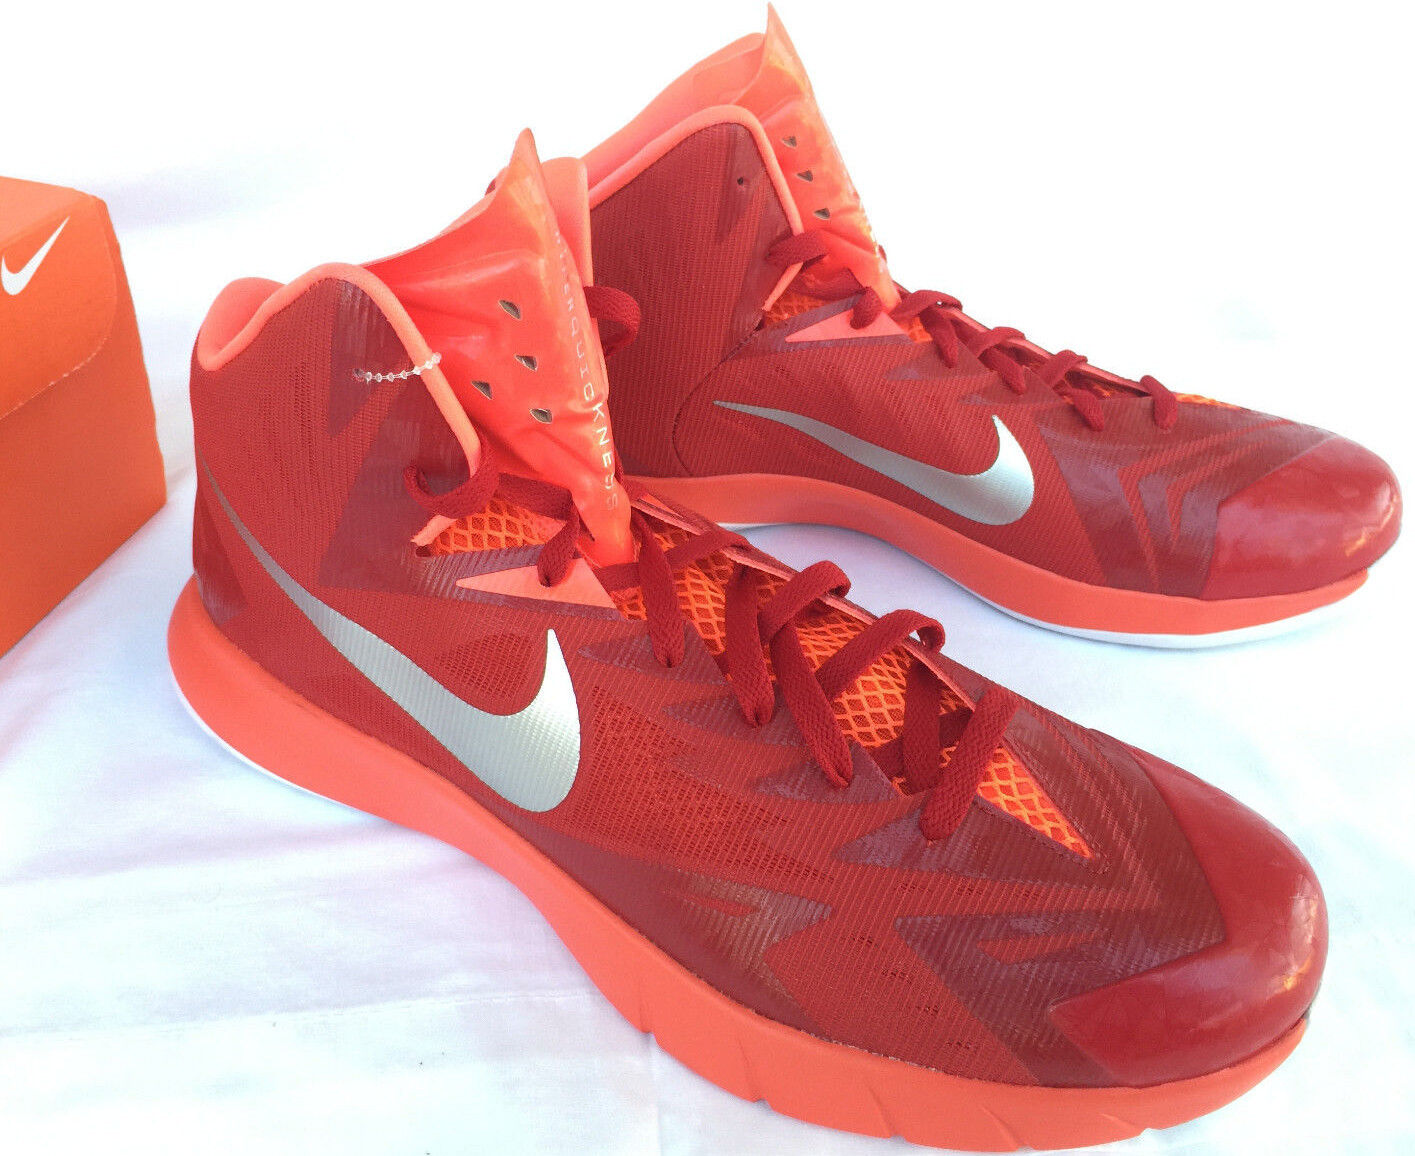 Nike Lunar Hyperquickness Shoes TB 652775-606 Red Basketball Shoes Hyperquickness Men's 14 NCAA new 0aacad